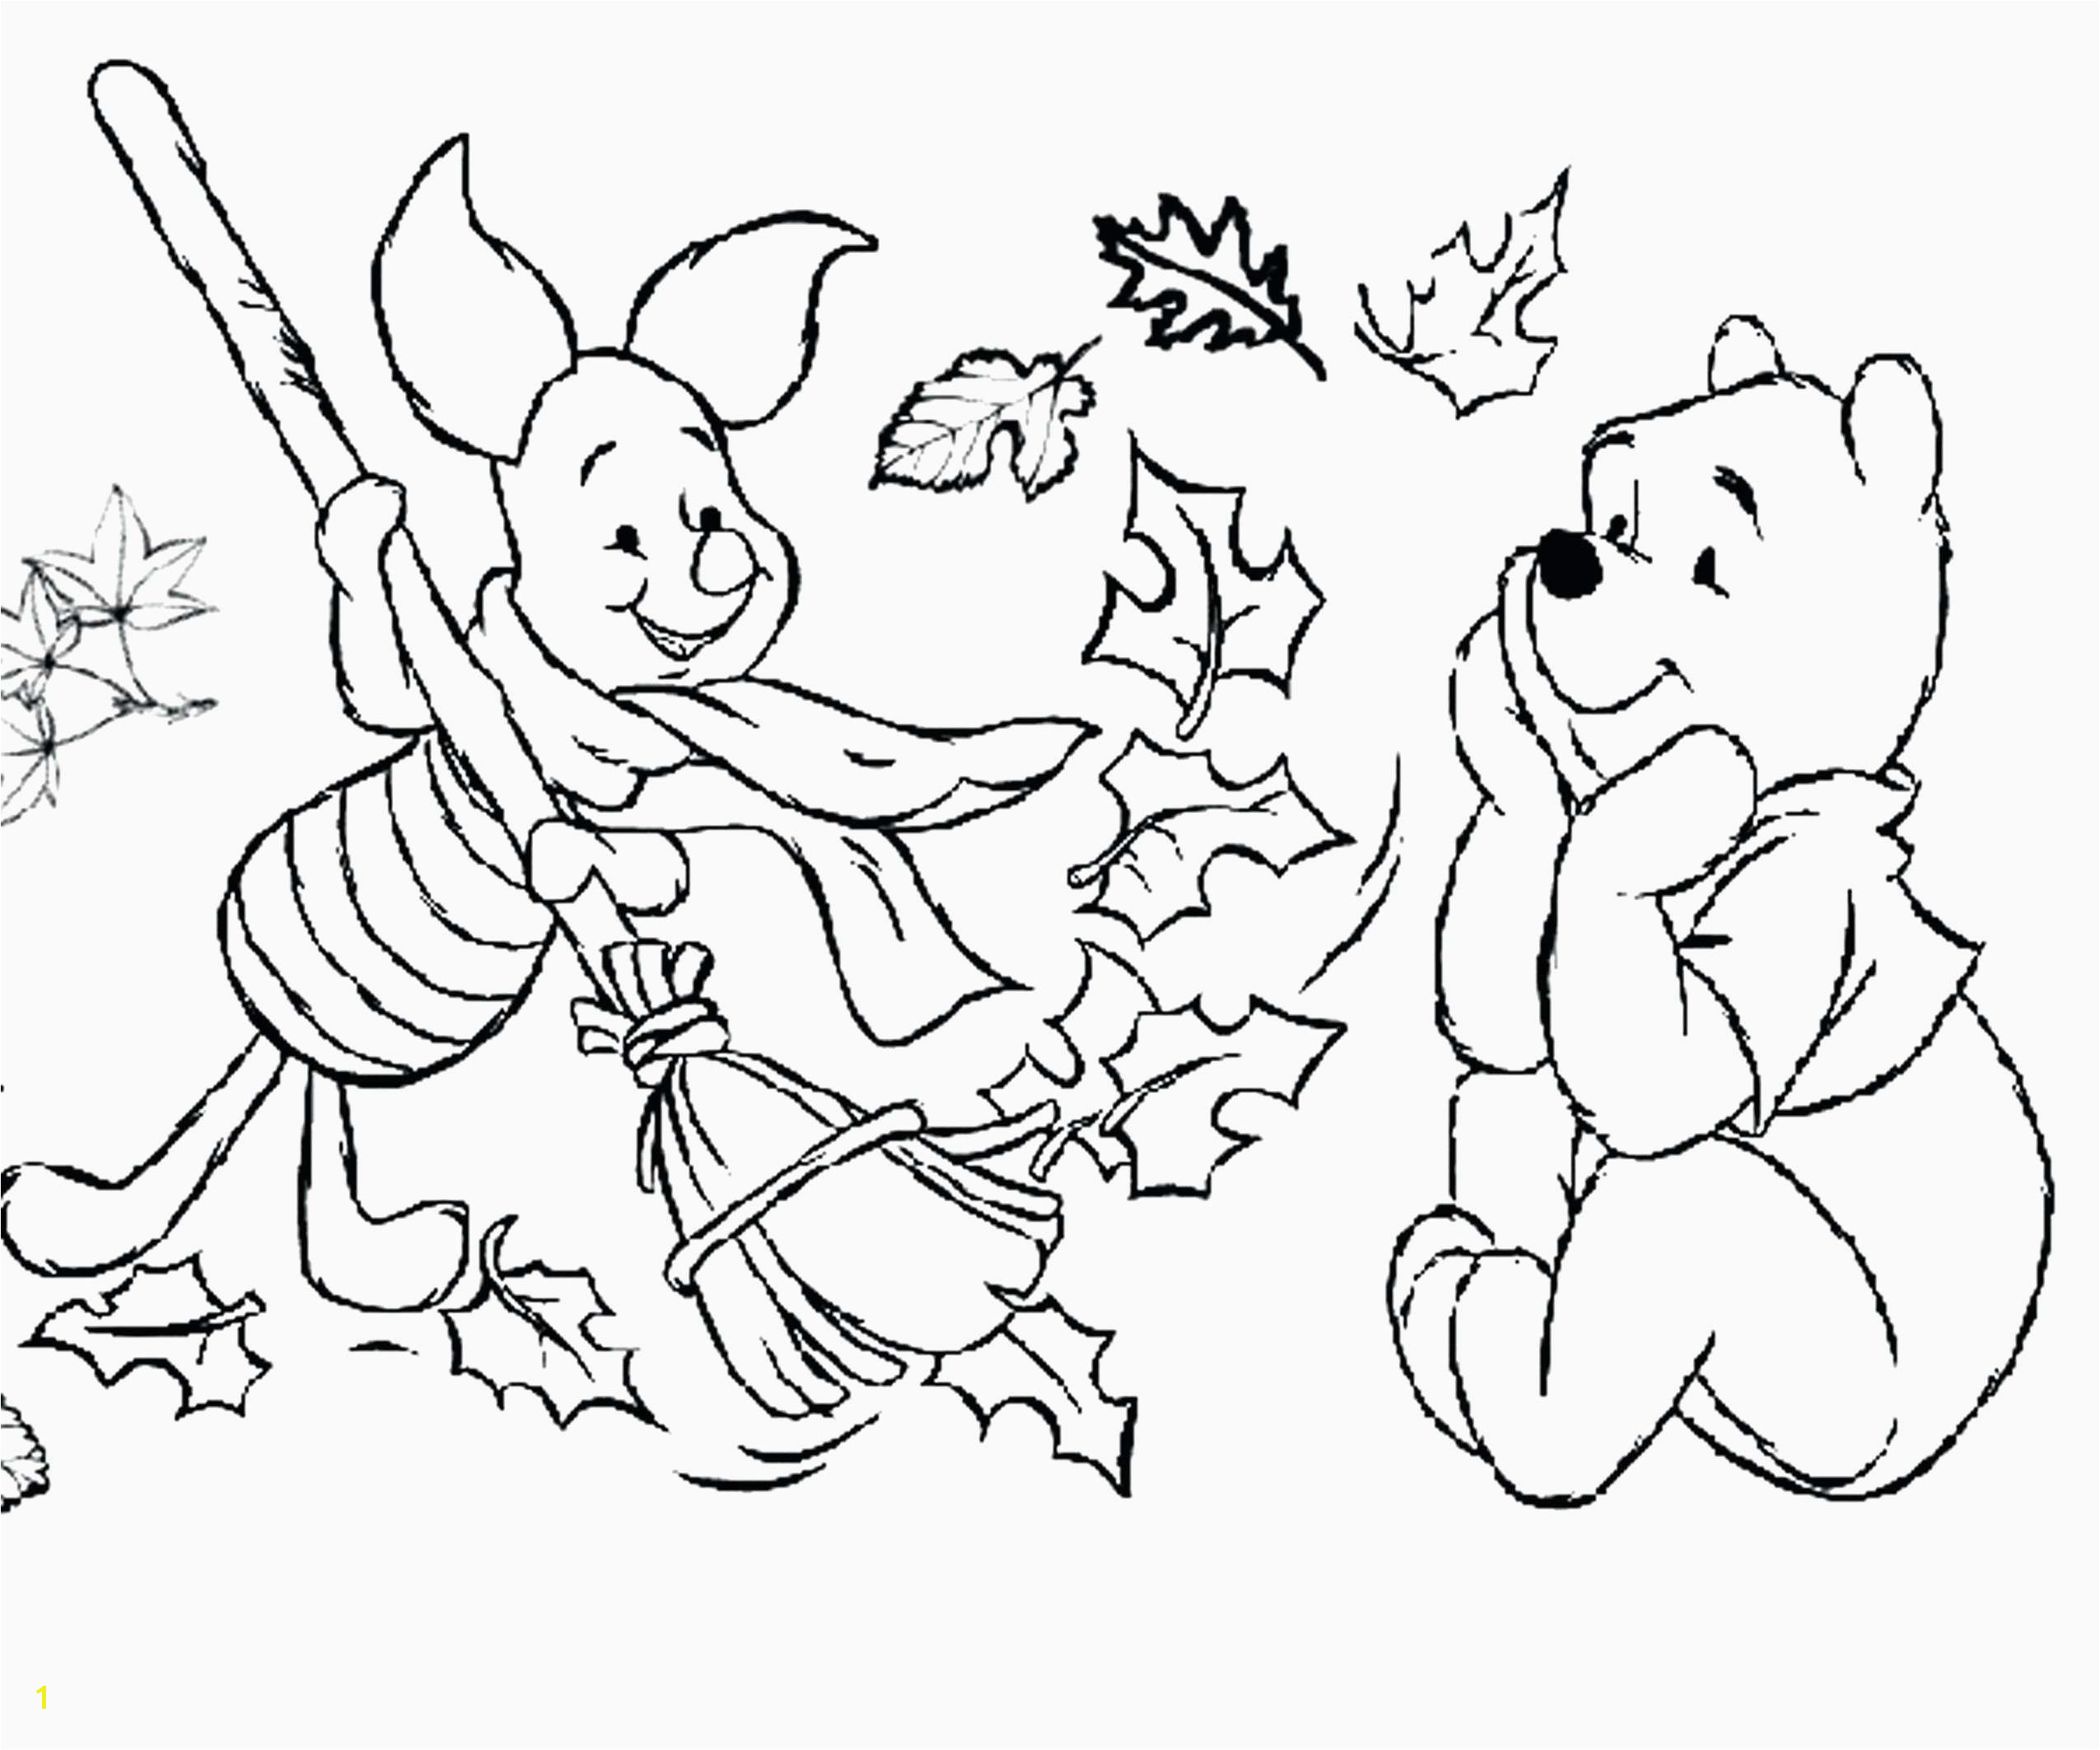 Kids Coloring Pages for Girls Free Batman Coloring Pages Games New Fall Coloring Pages 0d Page